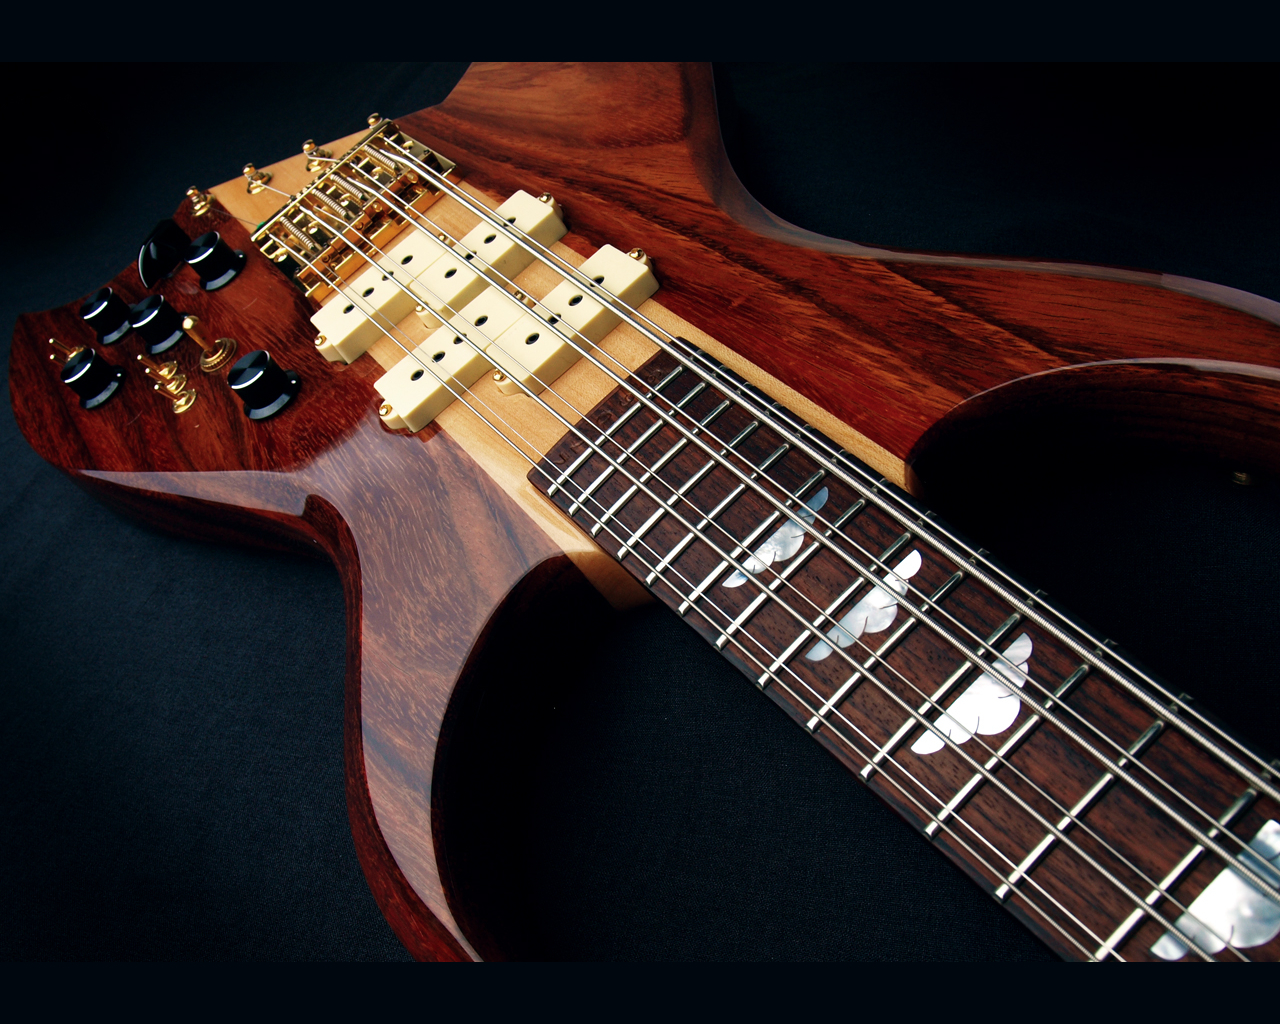 Anonymous bass guitars guitar HD Wallpaper